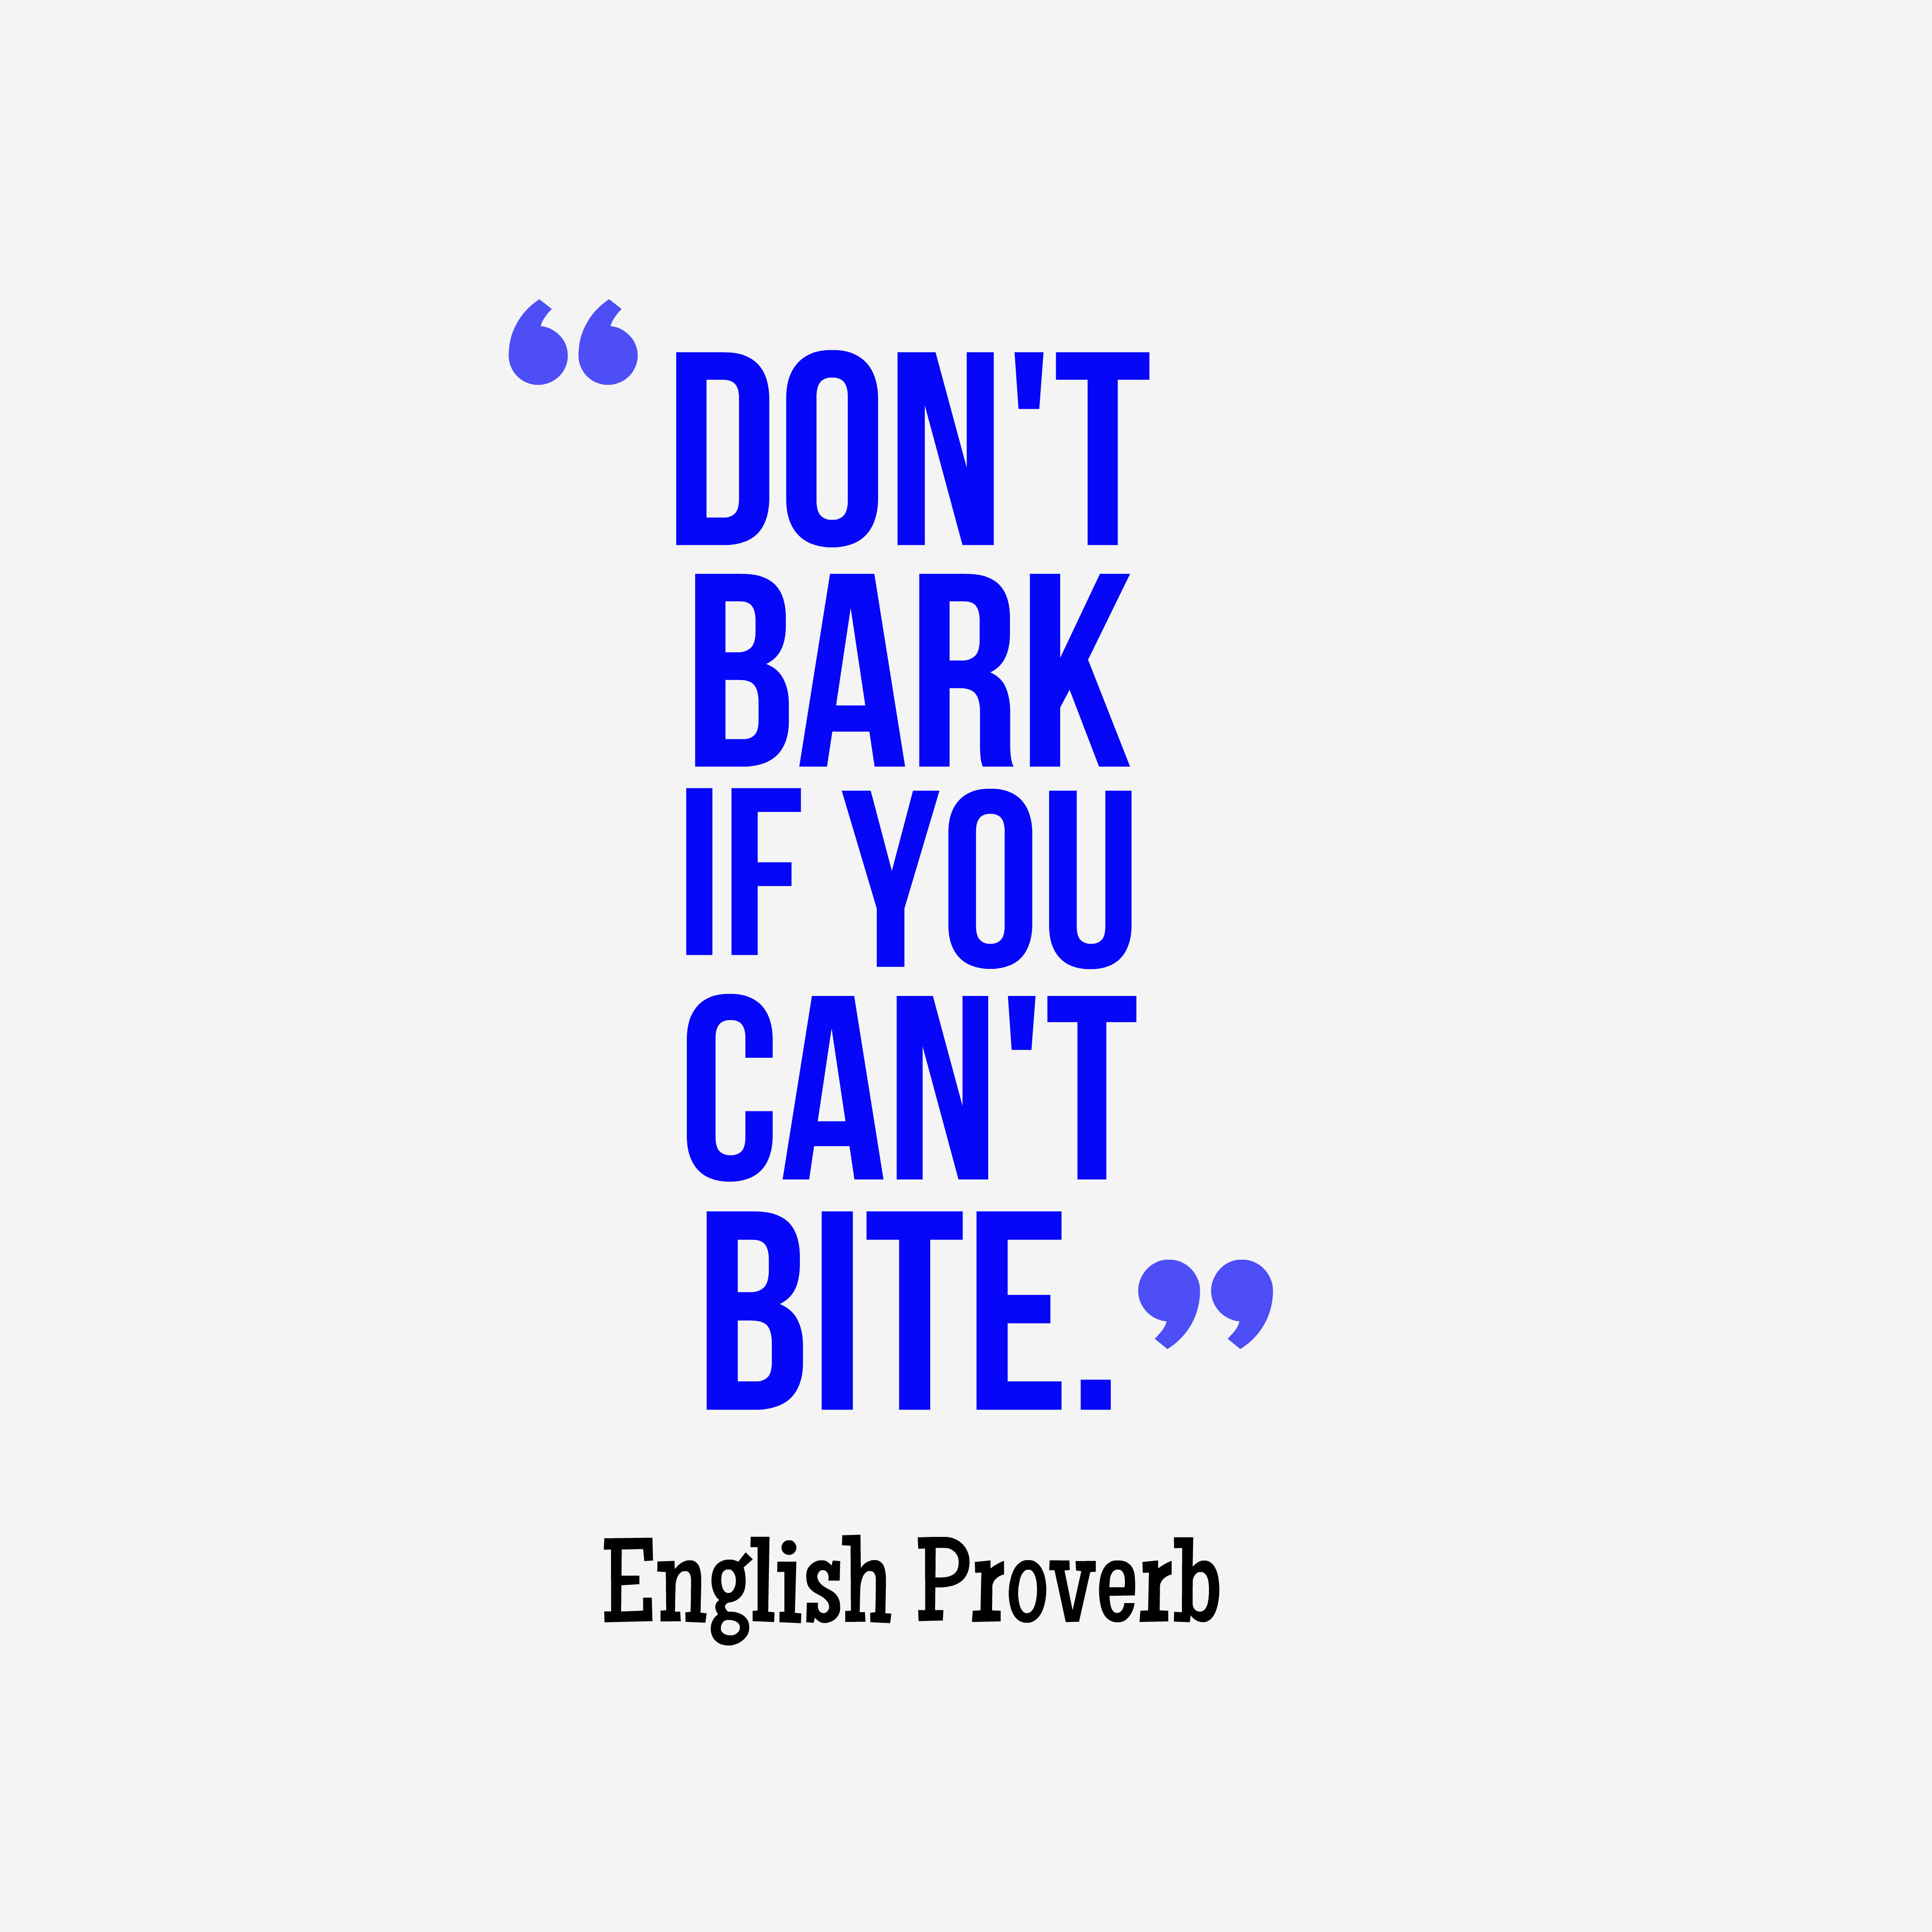 picture english proverb about competence quotescovercom